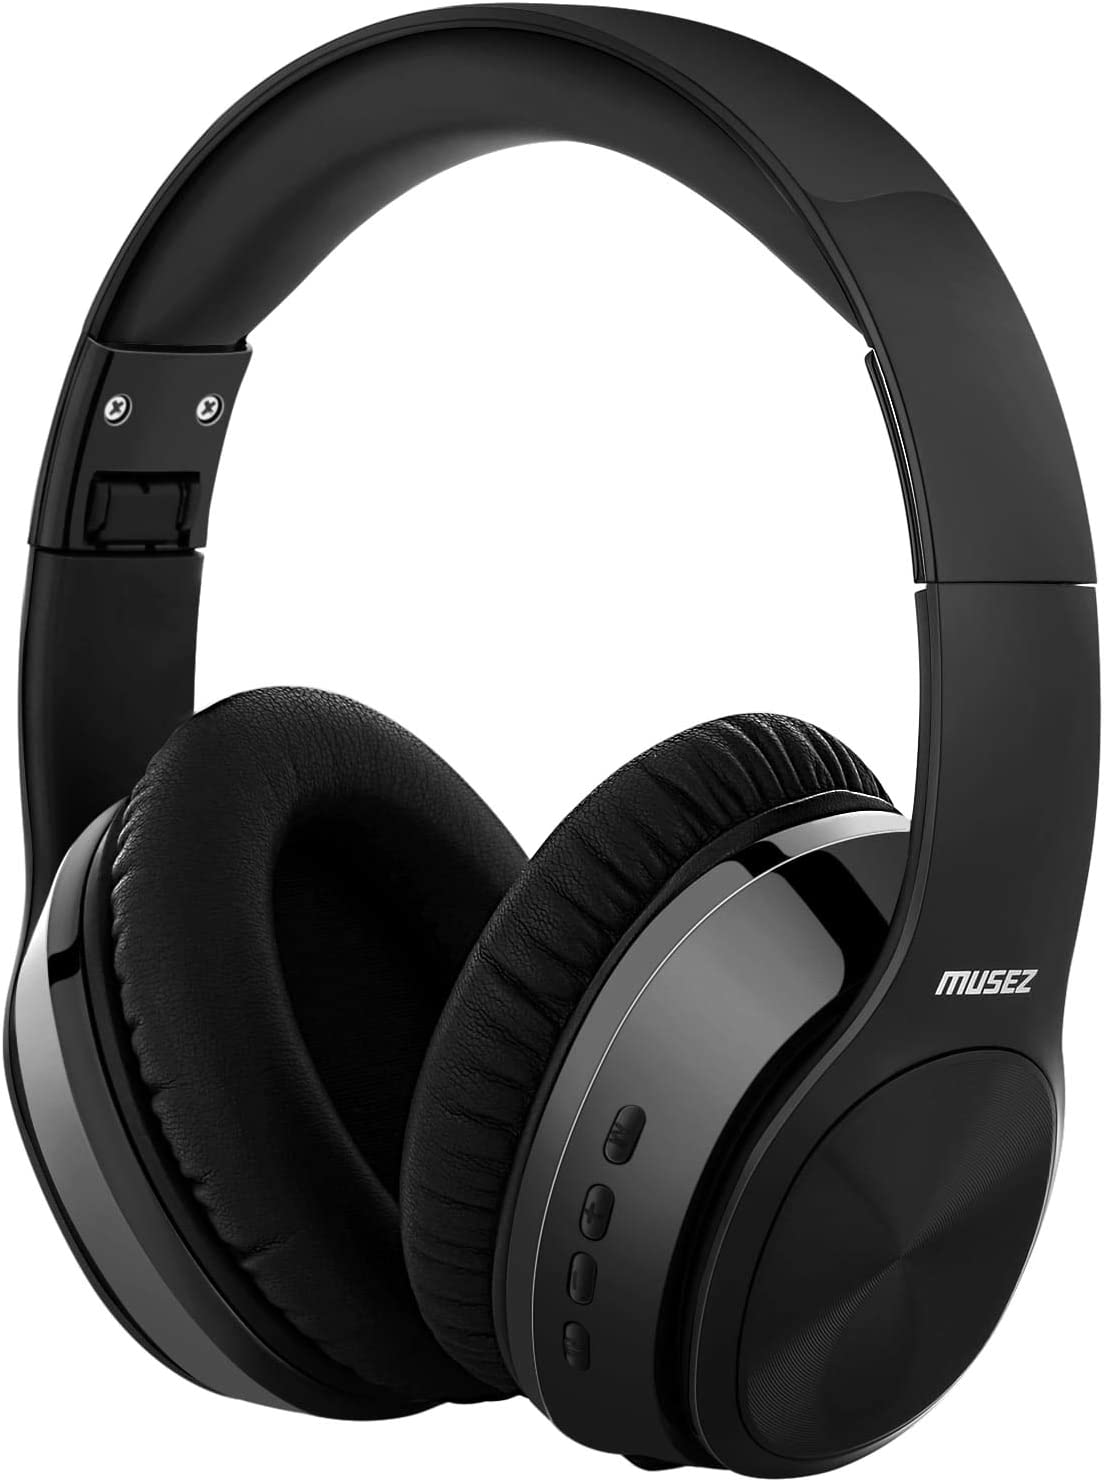 MUSEZ M3 Bluetooth 5.0 HeadphonesOver Ear, Hi-Fi Stereo Wireless Headset, Foldable, Soft Memory-Protein Earmuffs, w/Built-in Mic Wired Mode, for Travel/Work, Free Protective case (Black)